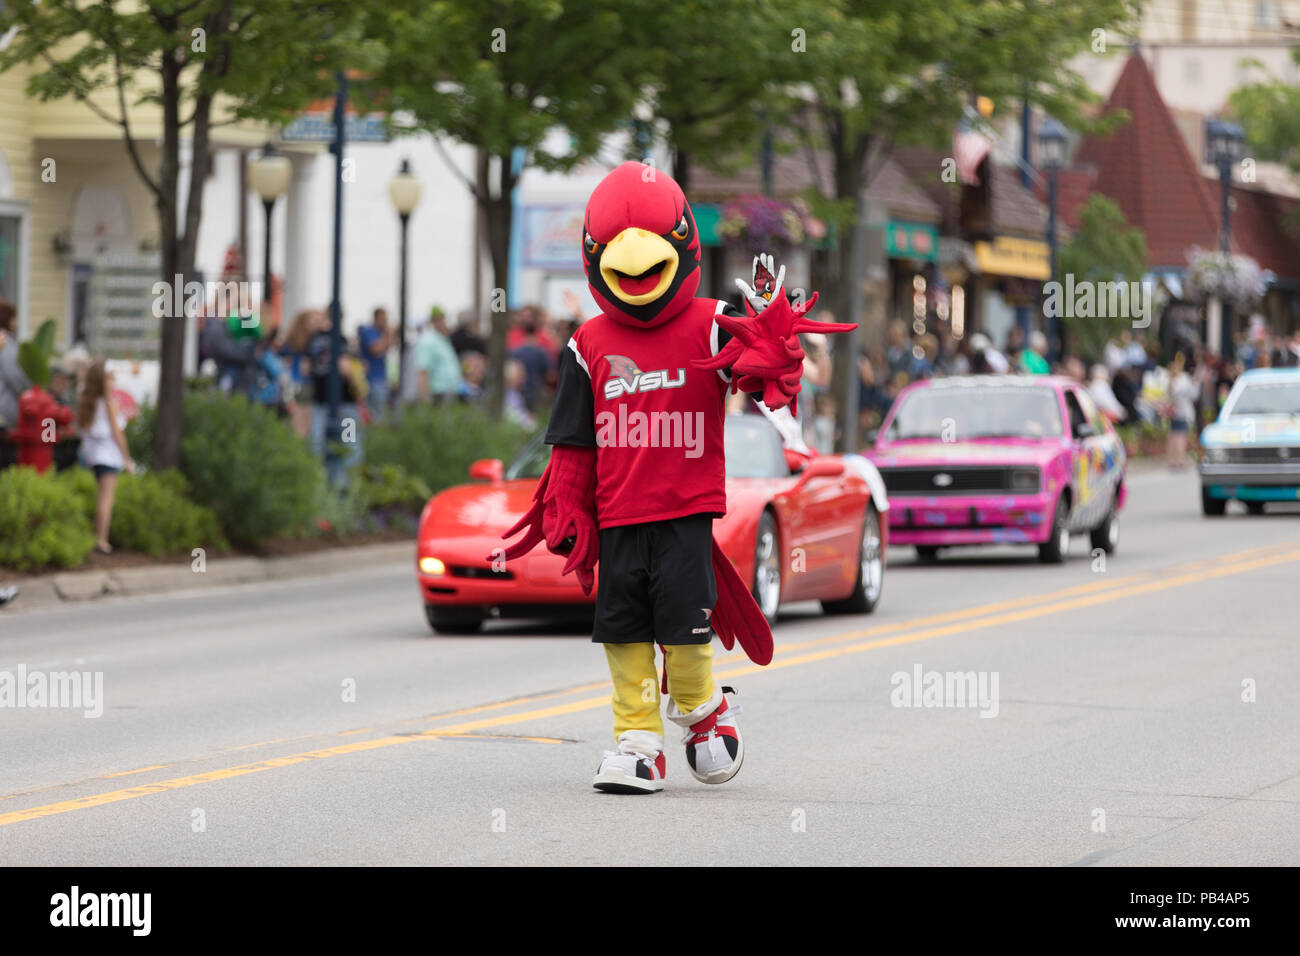 Frankenmuth, Michigan, USA - June 10, 2018 Man dress up as a cardenal the mascot from  Saginaw Valley State University at the Bavarian Festival Parade - Stock Image